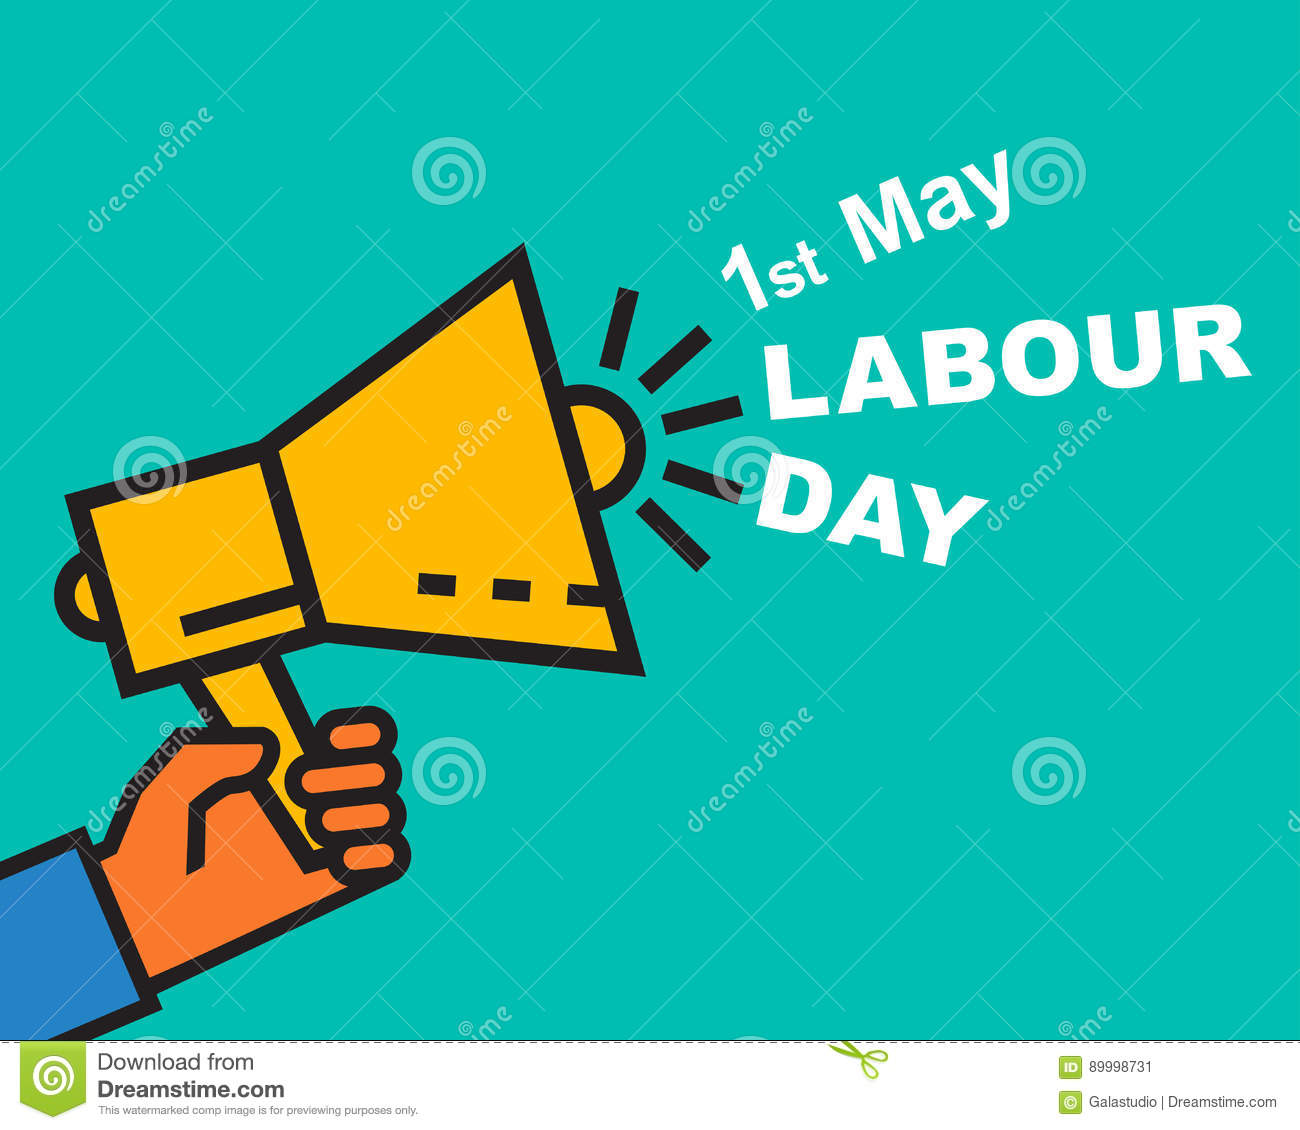 1 may labour day greeting card or background stock illustration download 1 may labour day greeting card or background stock illustration illustration of label m4hsunfo